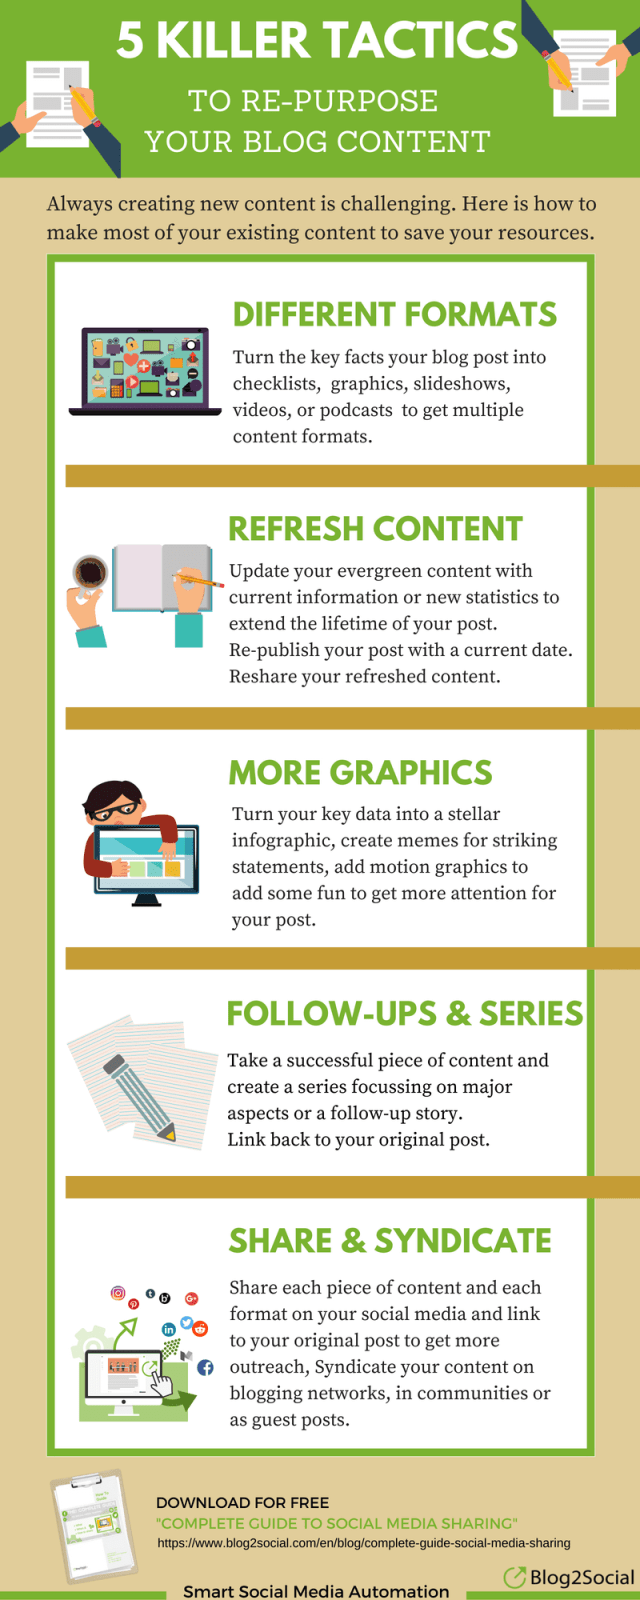 how to repurpose your content infographic compressed